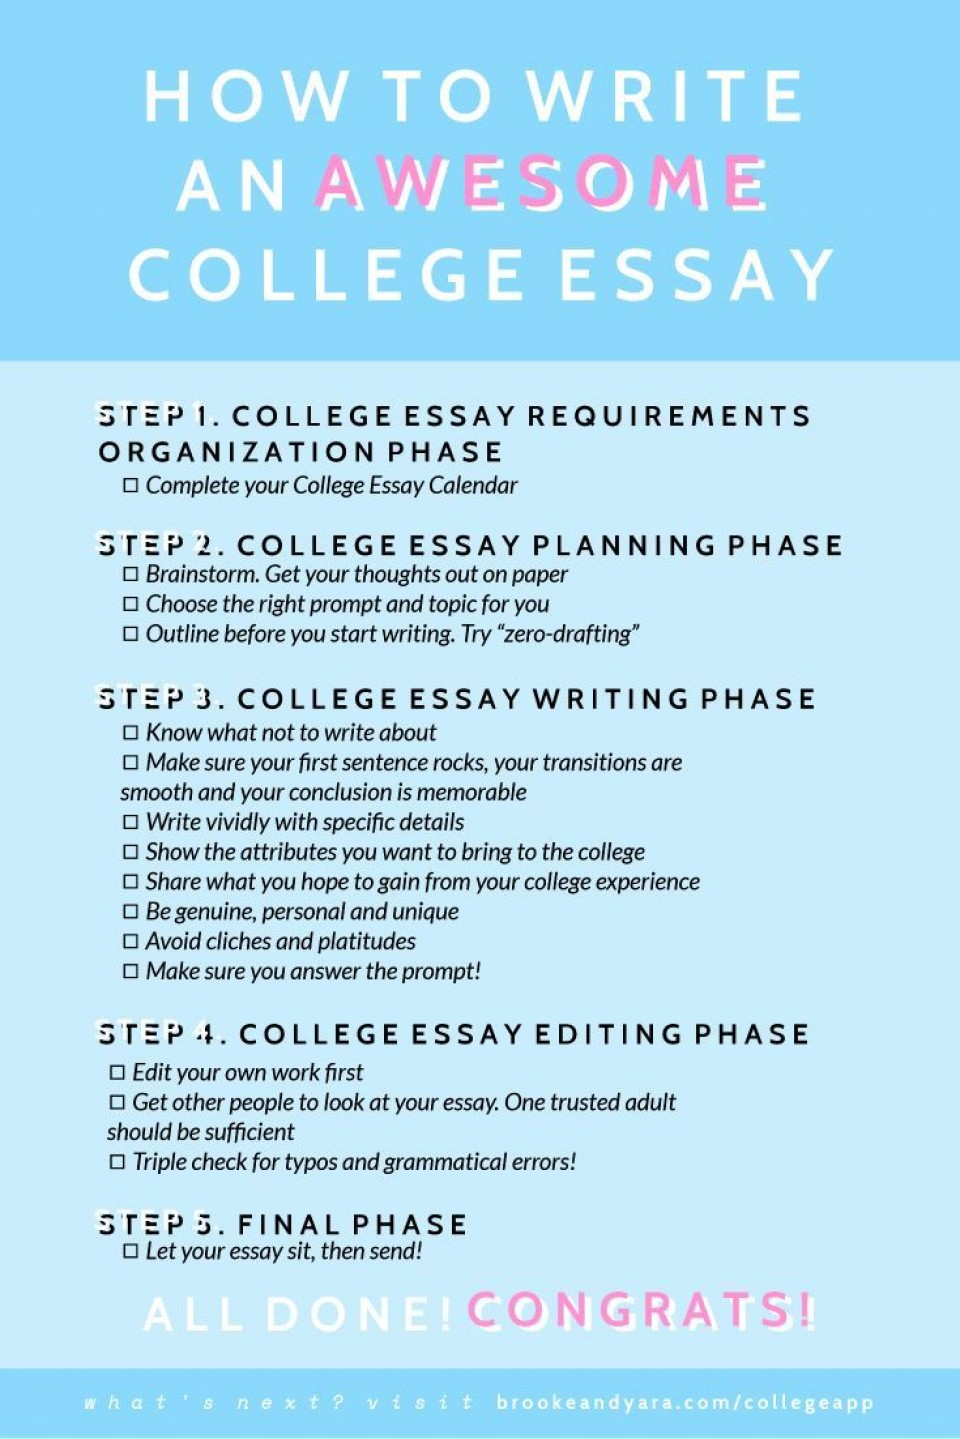 009 Essay Example What Not To Write About In Shocking A College Transfer Good Things 960